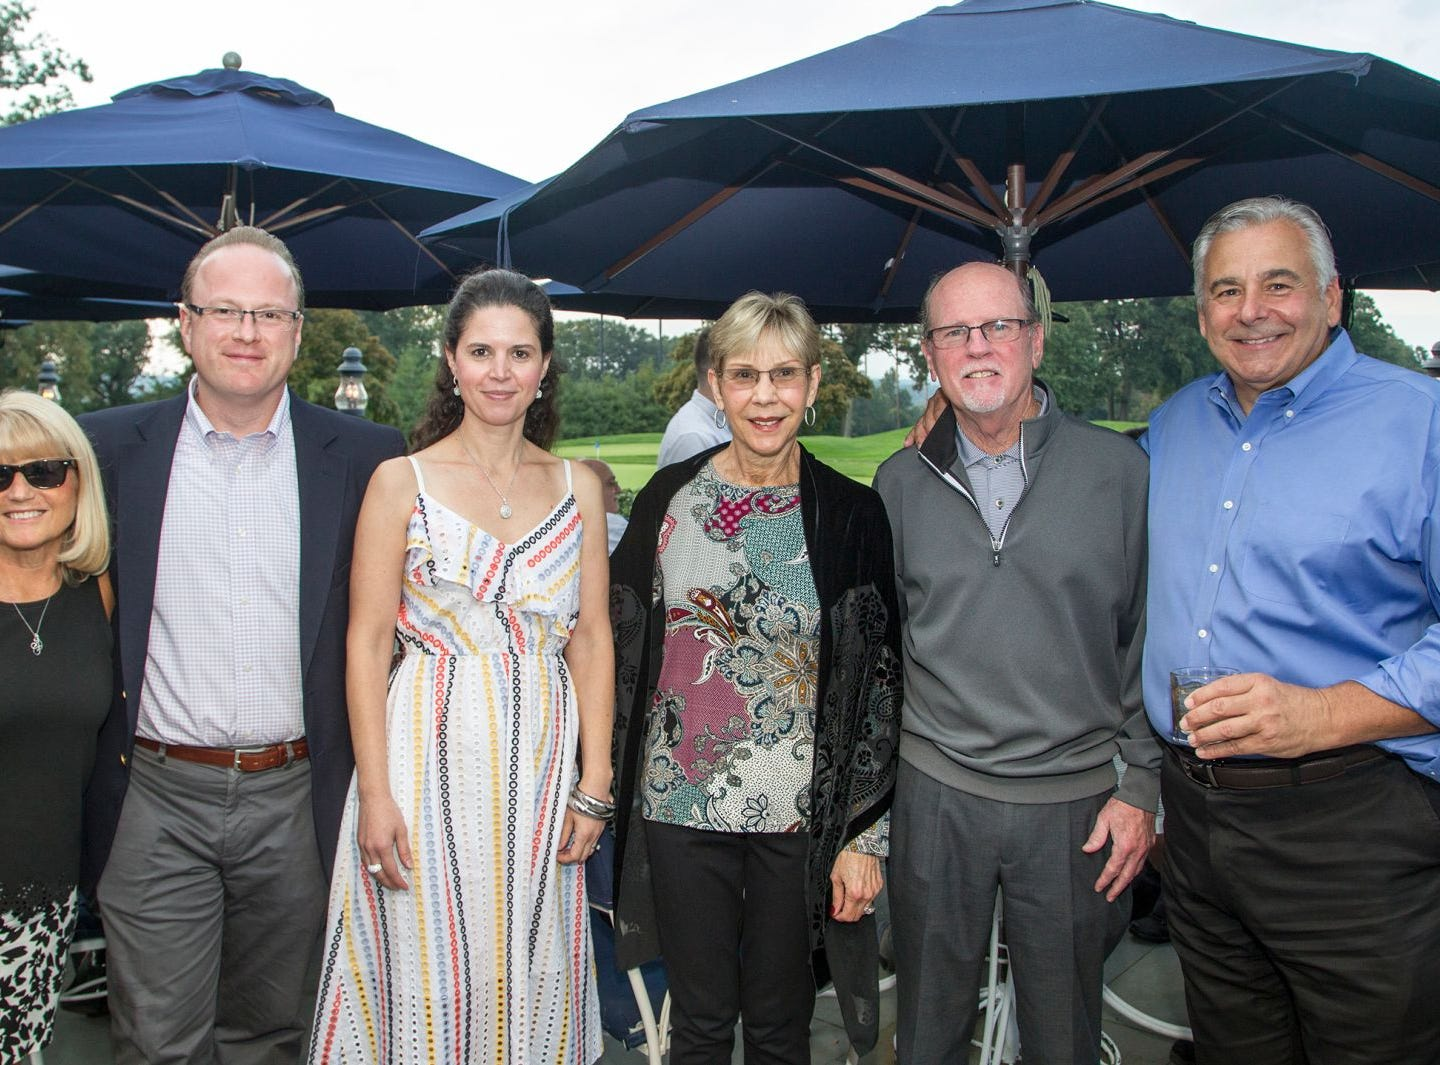 Diane Lento, Augie and Maria Zenzius, Joanne and Jim Dowling, Frank Lento. Institute for Educational Achievement held its 23rd annual Golf Classic at Hackensack Golf Club in Oradell. 10/01/2018